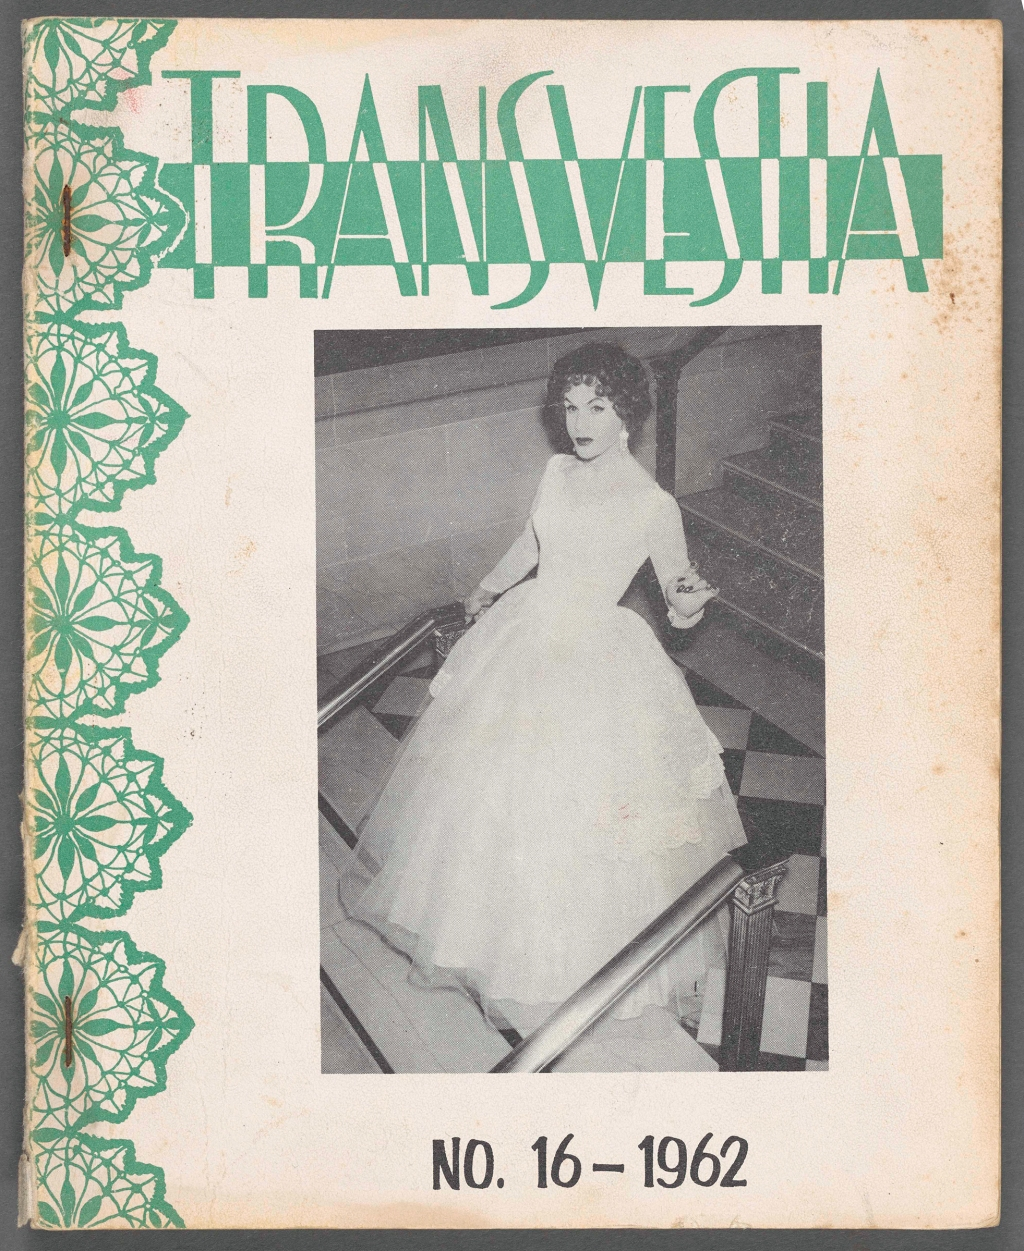 """Throughout the 1960s, magazines were popping up across the queer spectrum. Transvestia's target audience was people who identified as heterosexual crossdressers. Readers sent in photos of themselves crossdressed and wrote about their experiences trying to manage their cross-dressing and their heterosexual relationships. The magazine's editor, Virginia Prince, wrote her own story in the magazine, titled """"The How and Why of Virginia."""" She explained that when she came out to her first wife as a crossdresser named Muriel, her wife asked for a divorce, convinced that her husband was certainly gay. When she met her second wife, as a heterosexual man, she cautiously came out to her as Muriel. """"One morning about 4 a.m. I was awakened by a phone call. It was she and the first thing she said was, 'I understand!'"""" she wrote. The only caveat: she hated the name Muriel. """"So Virginia has been my name ever since."""""""